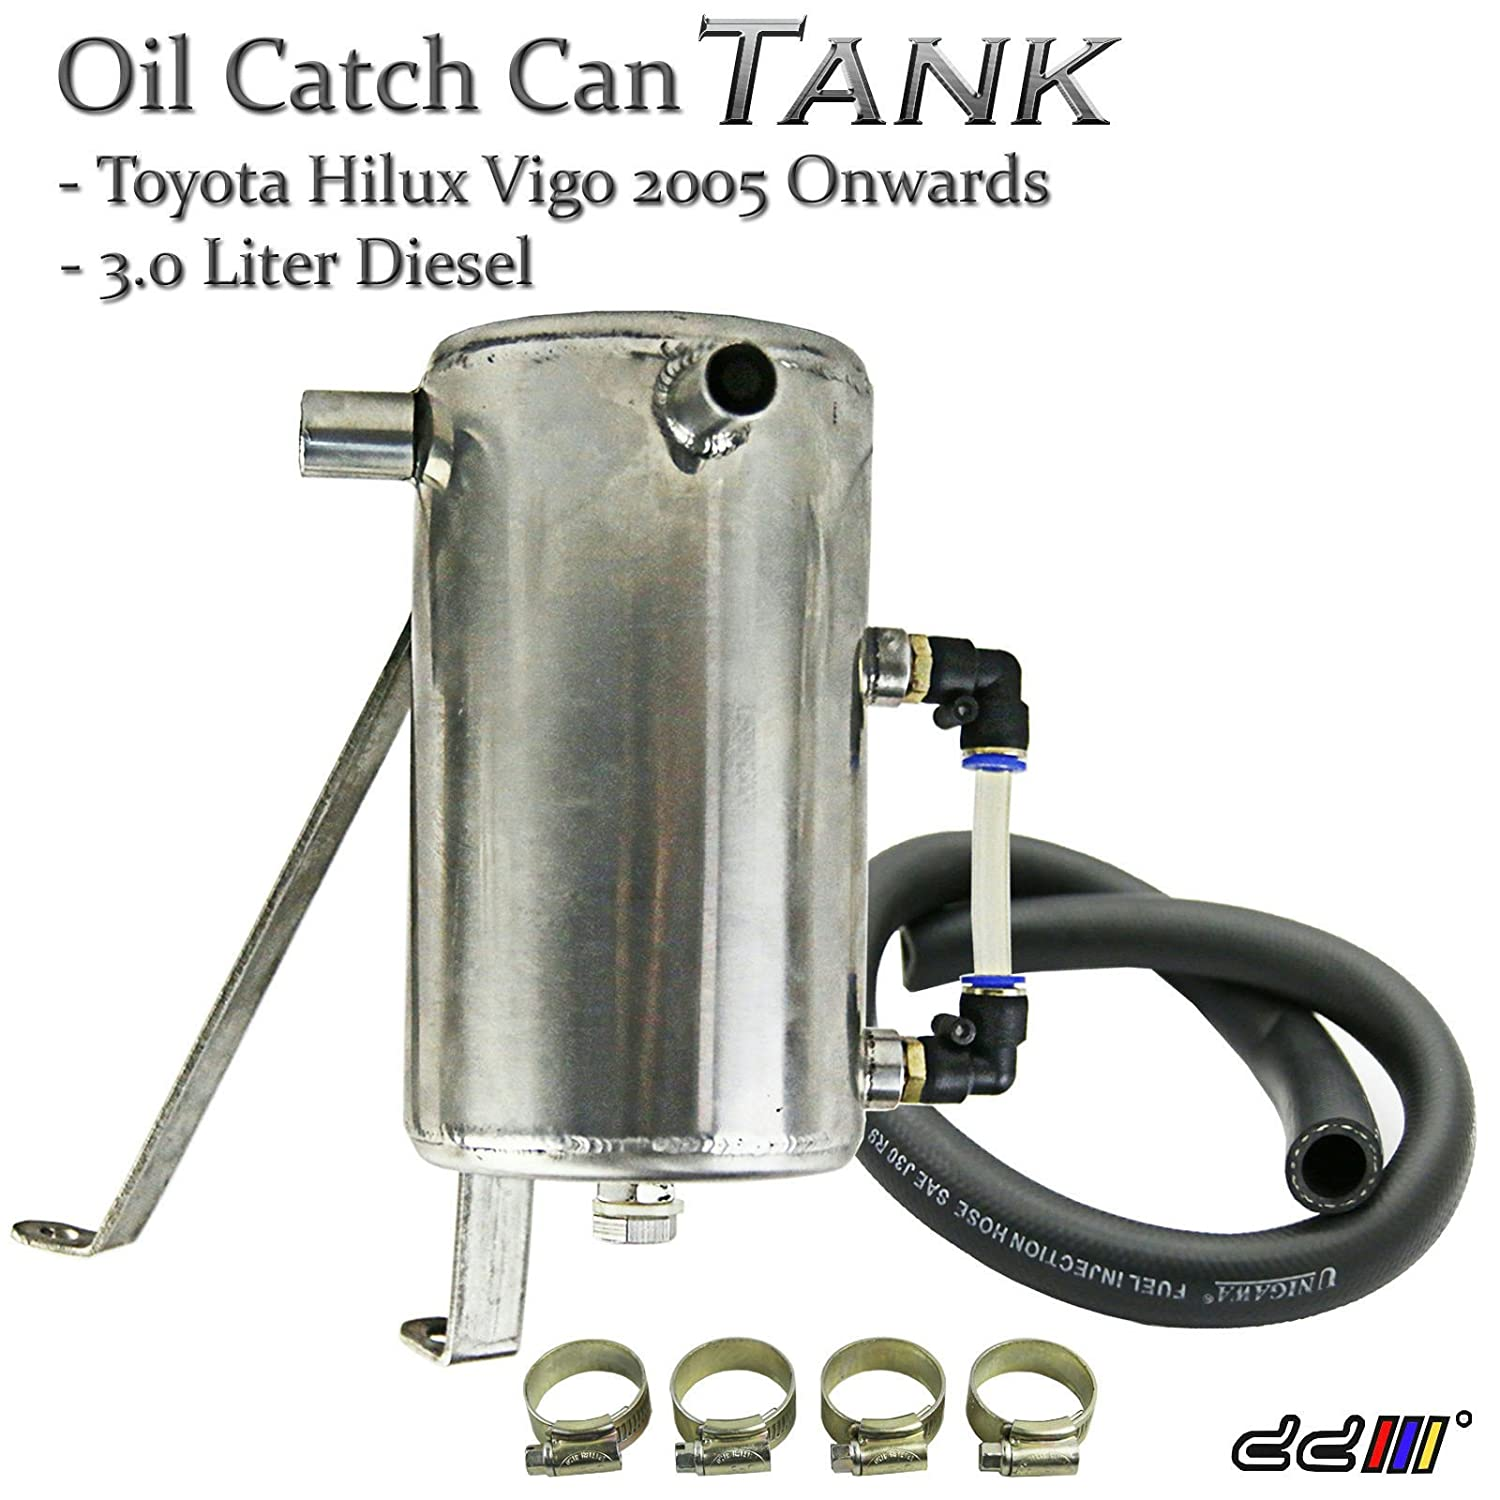 Amazon.com: Hilux Vigo 2005++ 3.0L 1KD Diesel Turbo Stainless Steel Oil Catch Can/Tank 16mm: Automotive